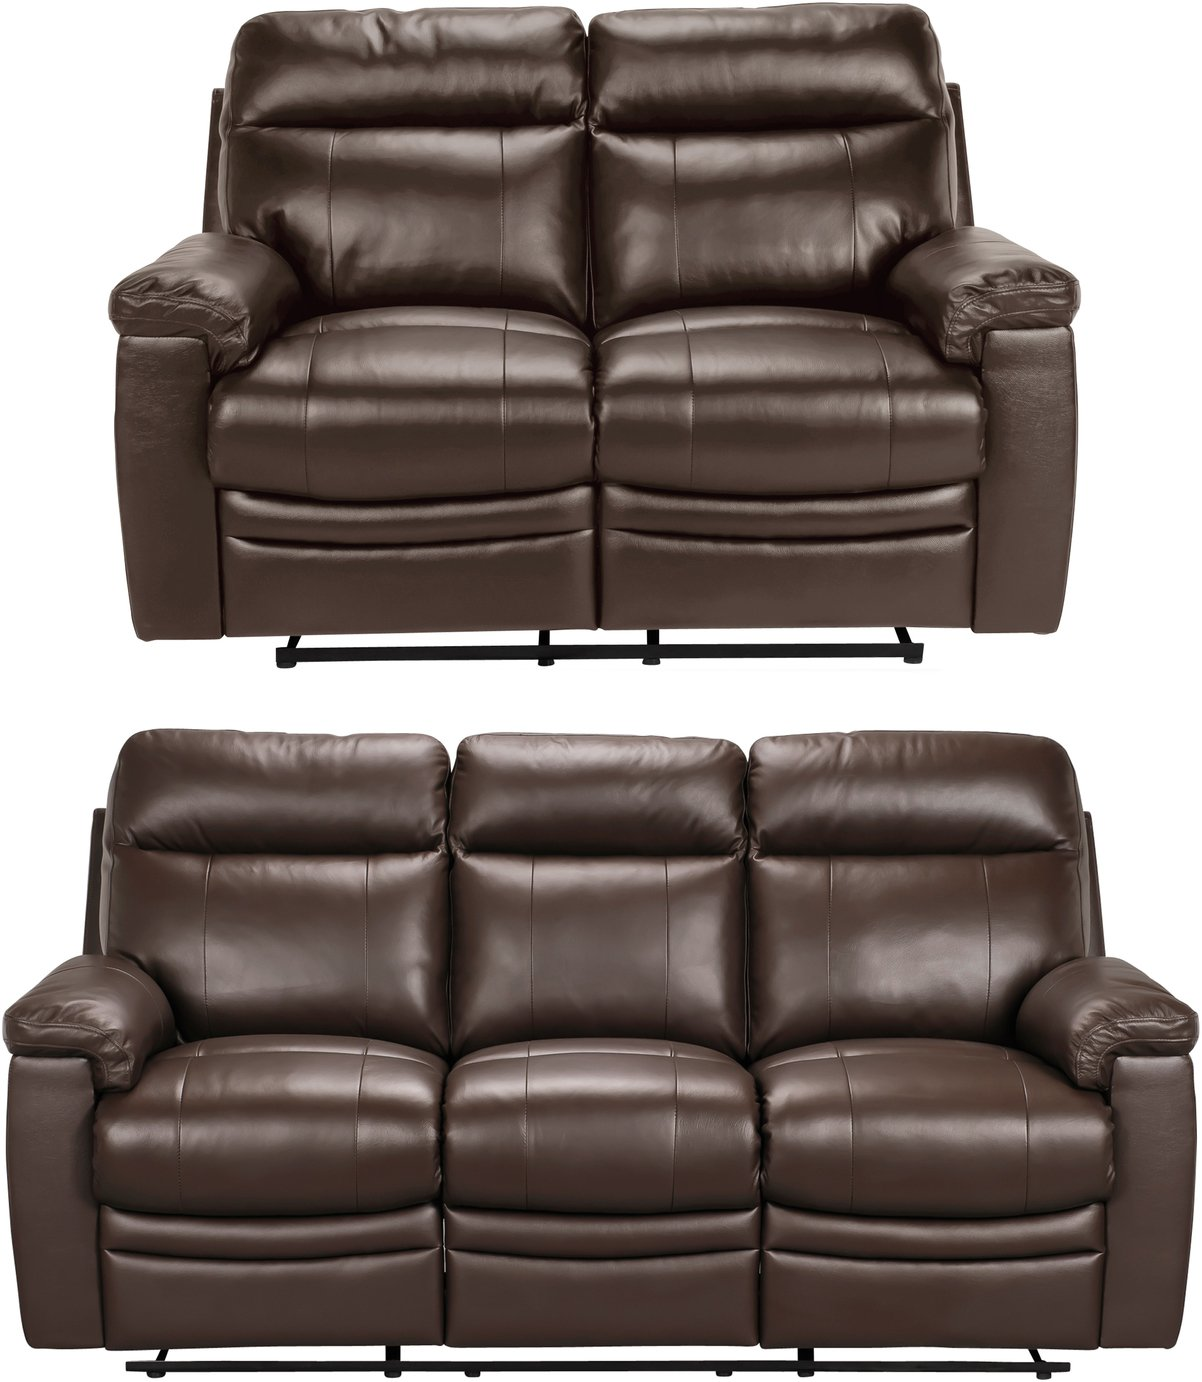 Argos Home Paolo 2 & 3 Seater Manual Recliner Sofas - Brown